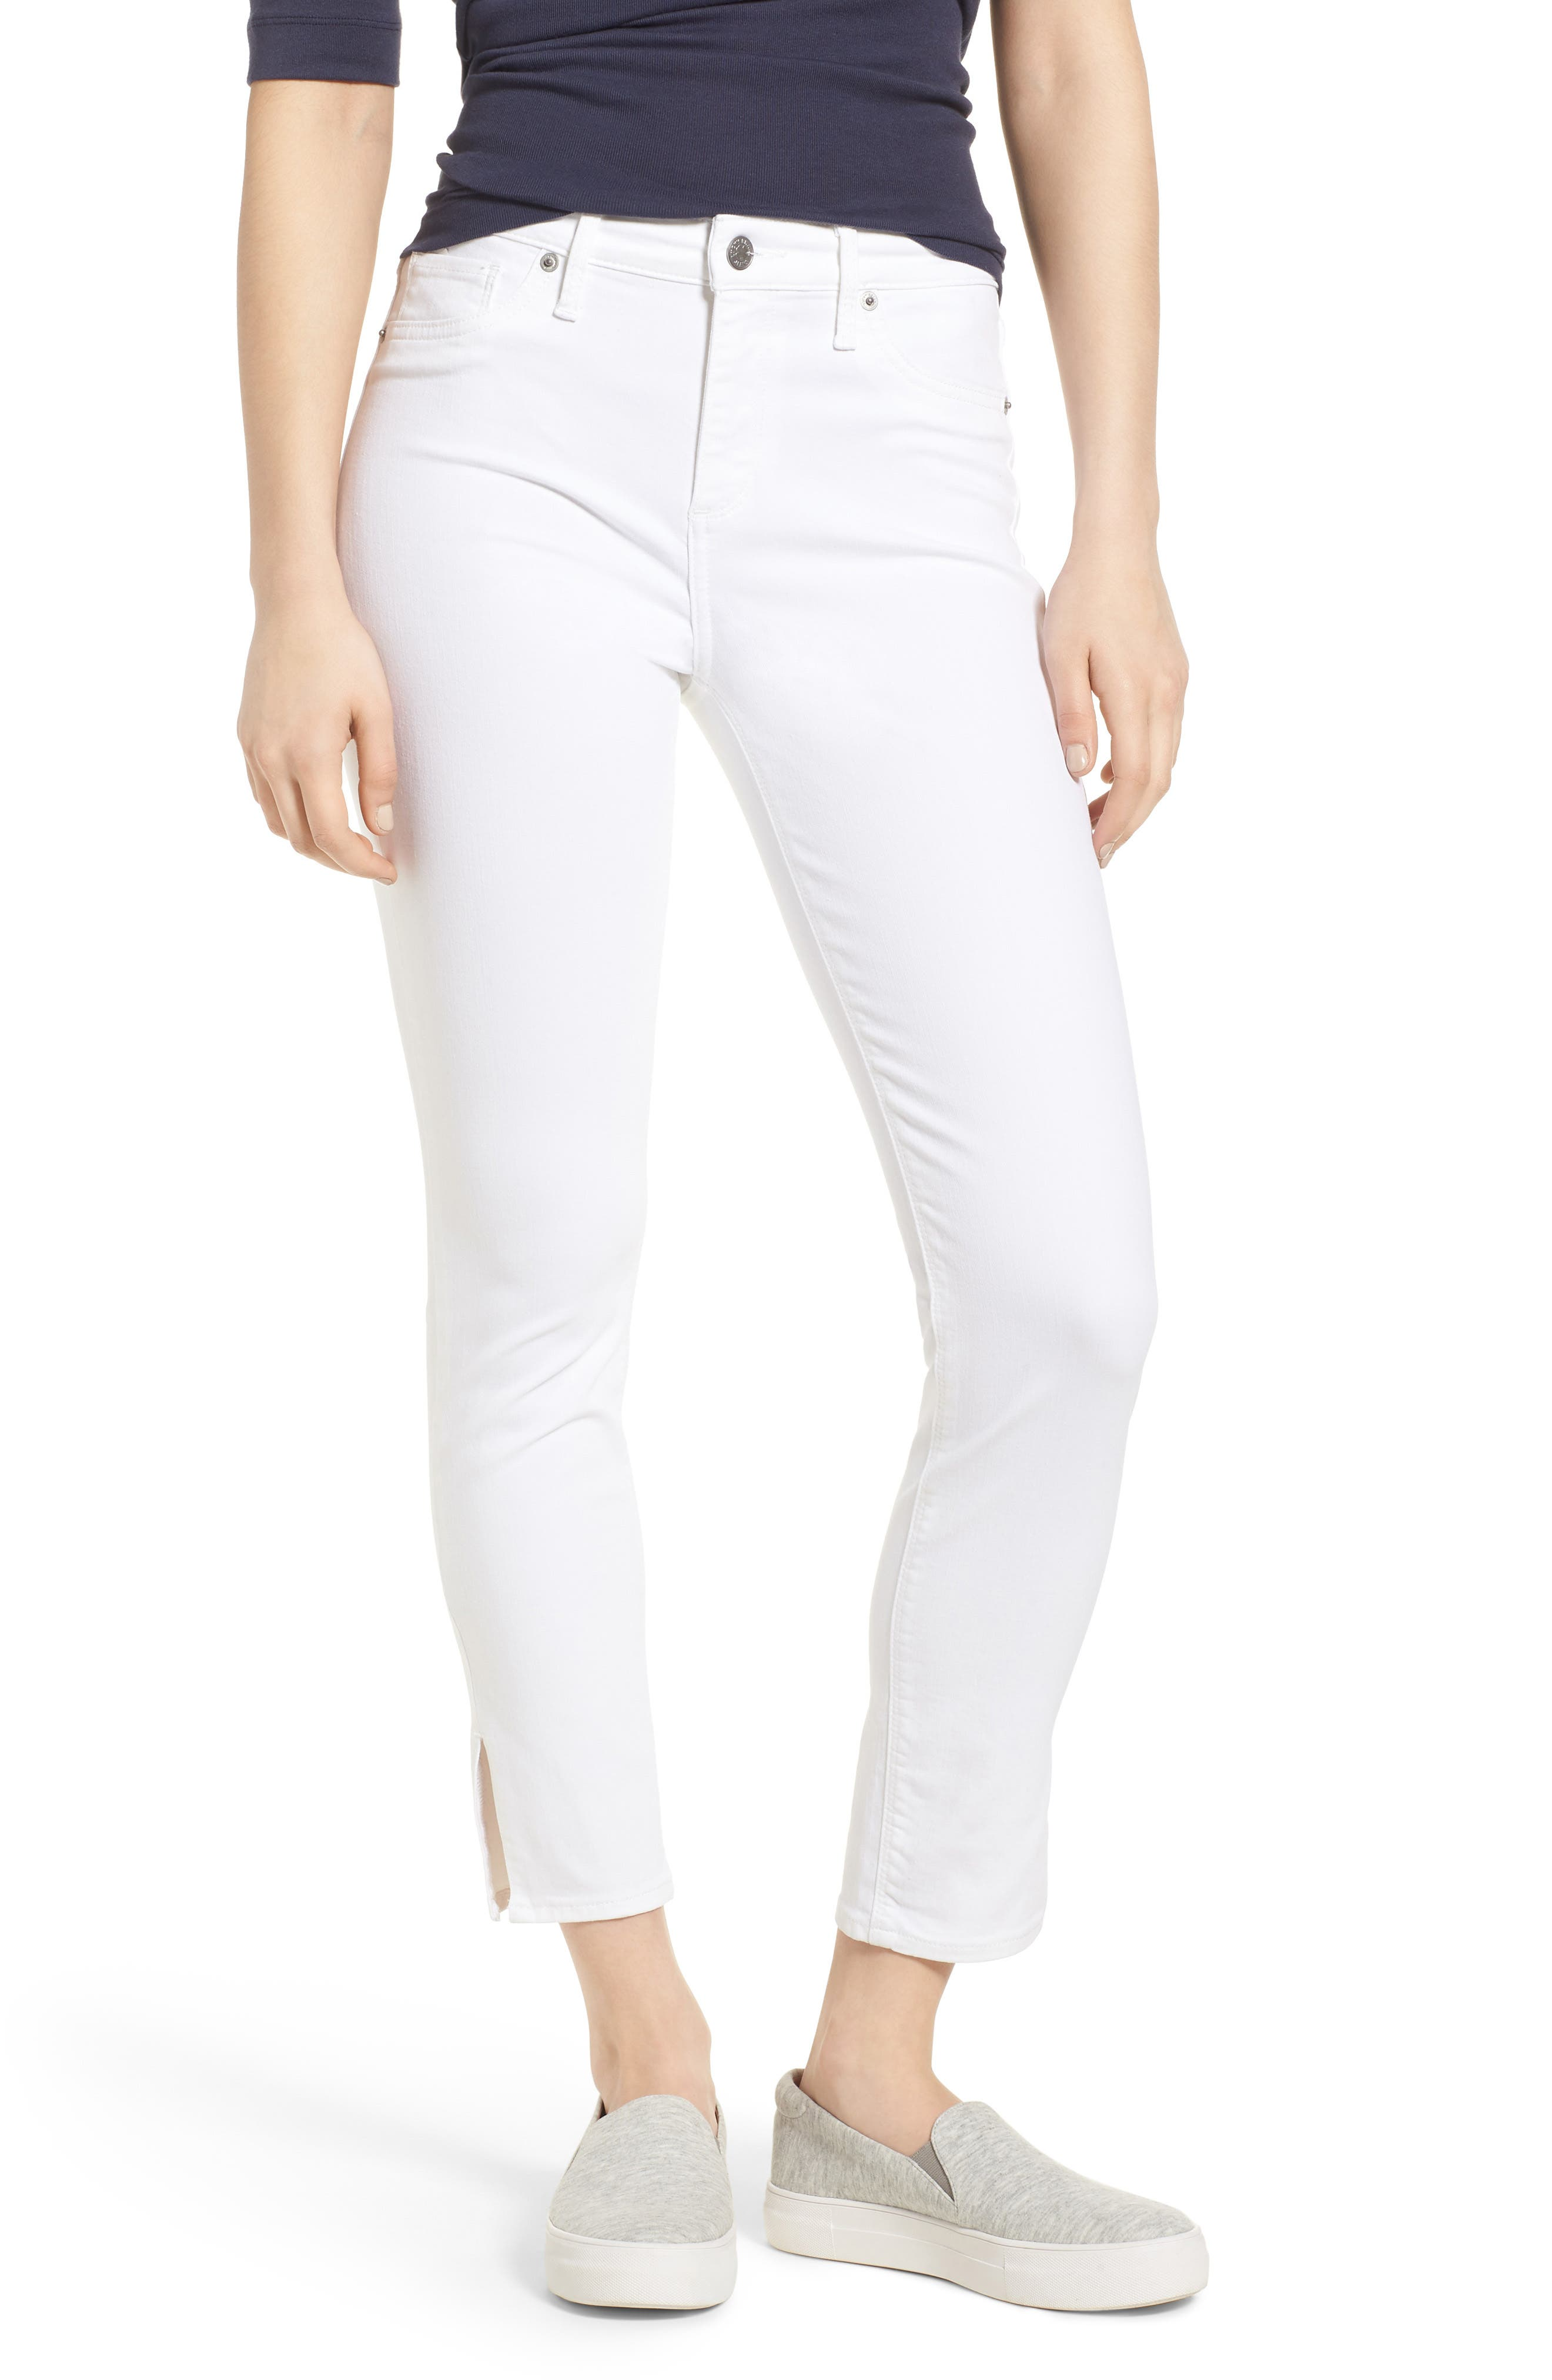 Ava Skinny White Jeans,                         Main,                         color, Clean White